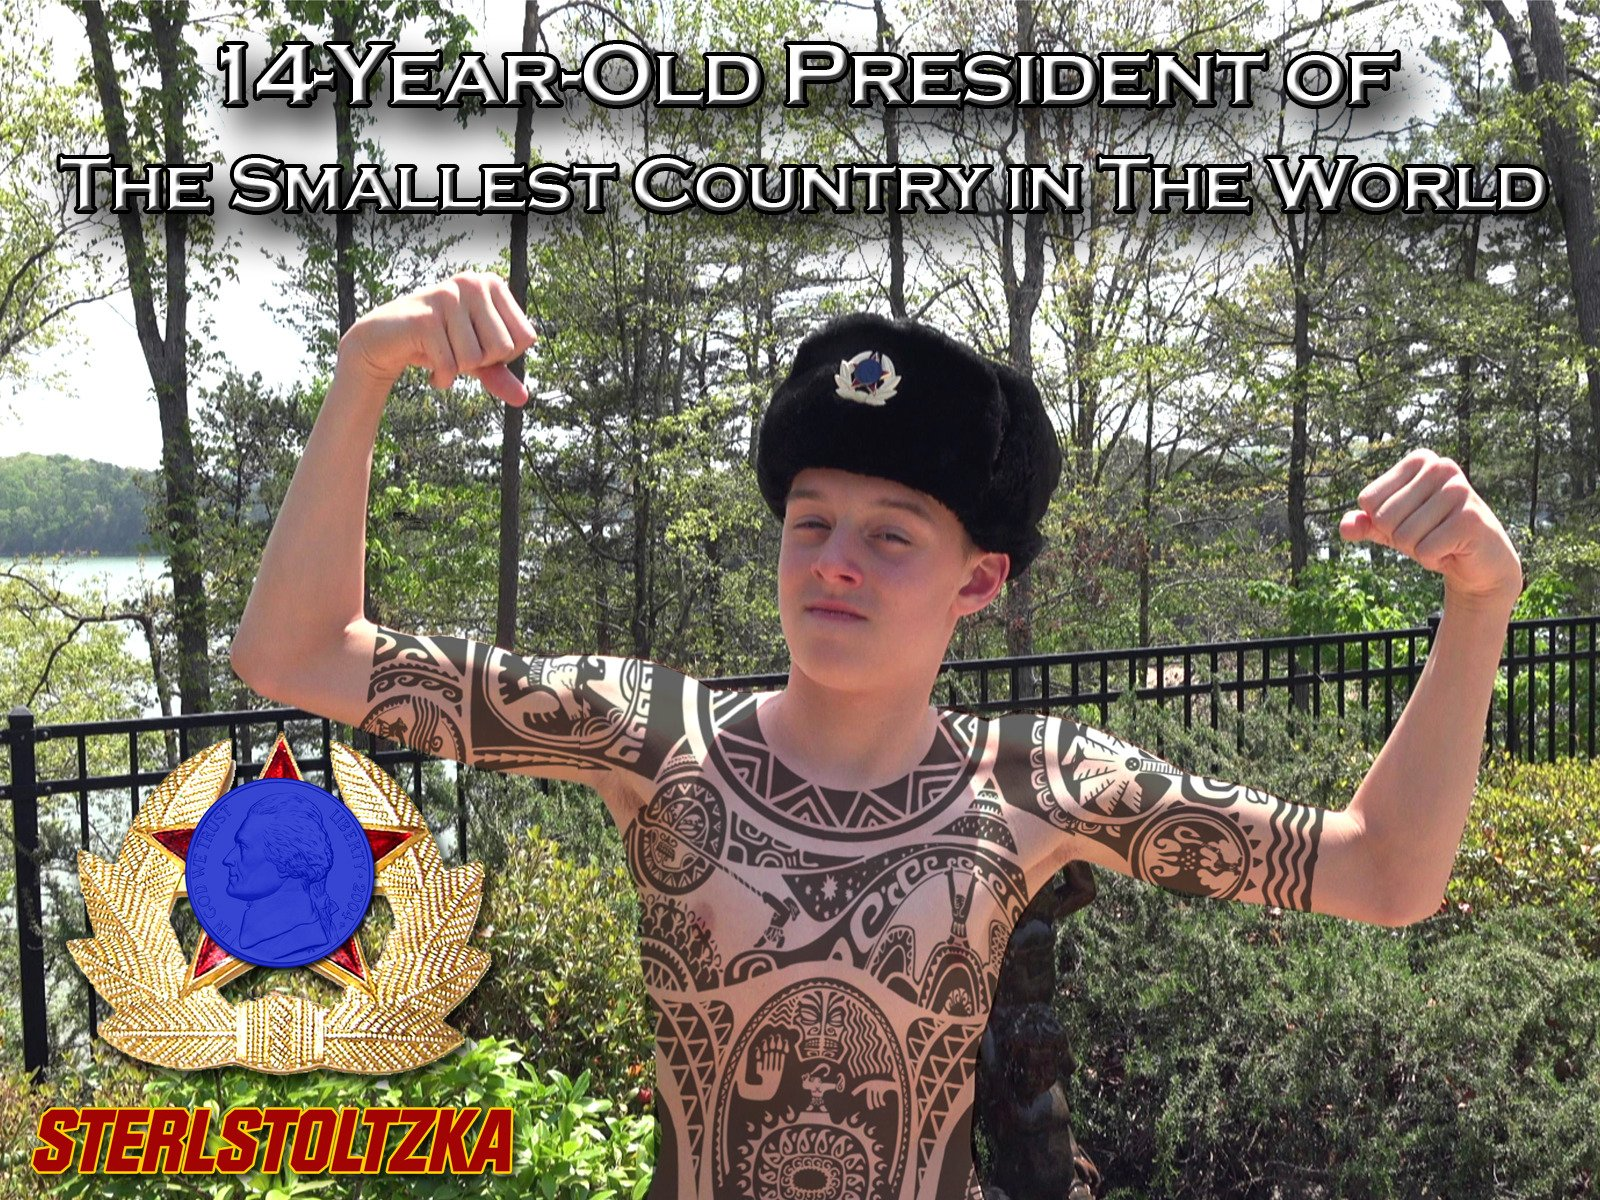 14 Year Old President of the Smallest Country in the World - Season 2